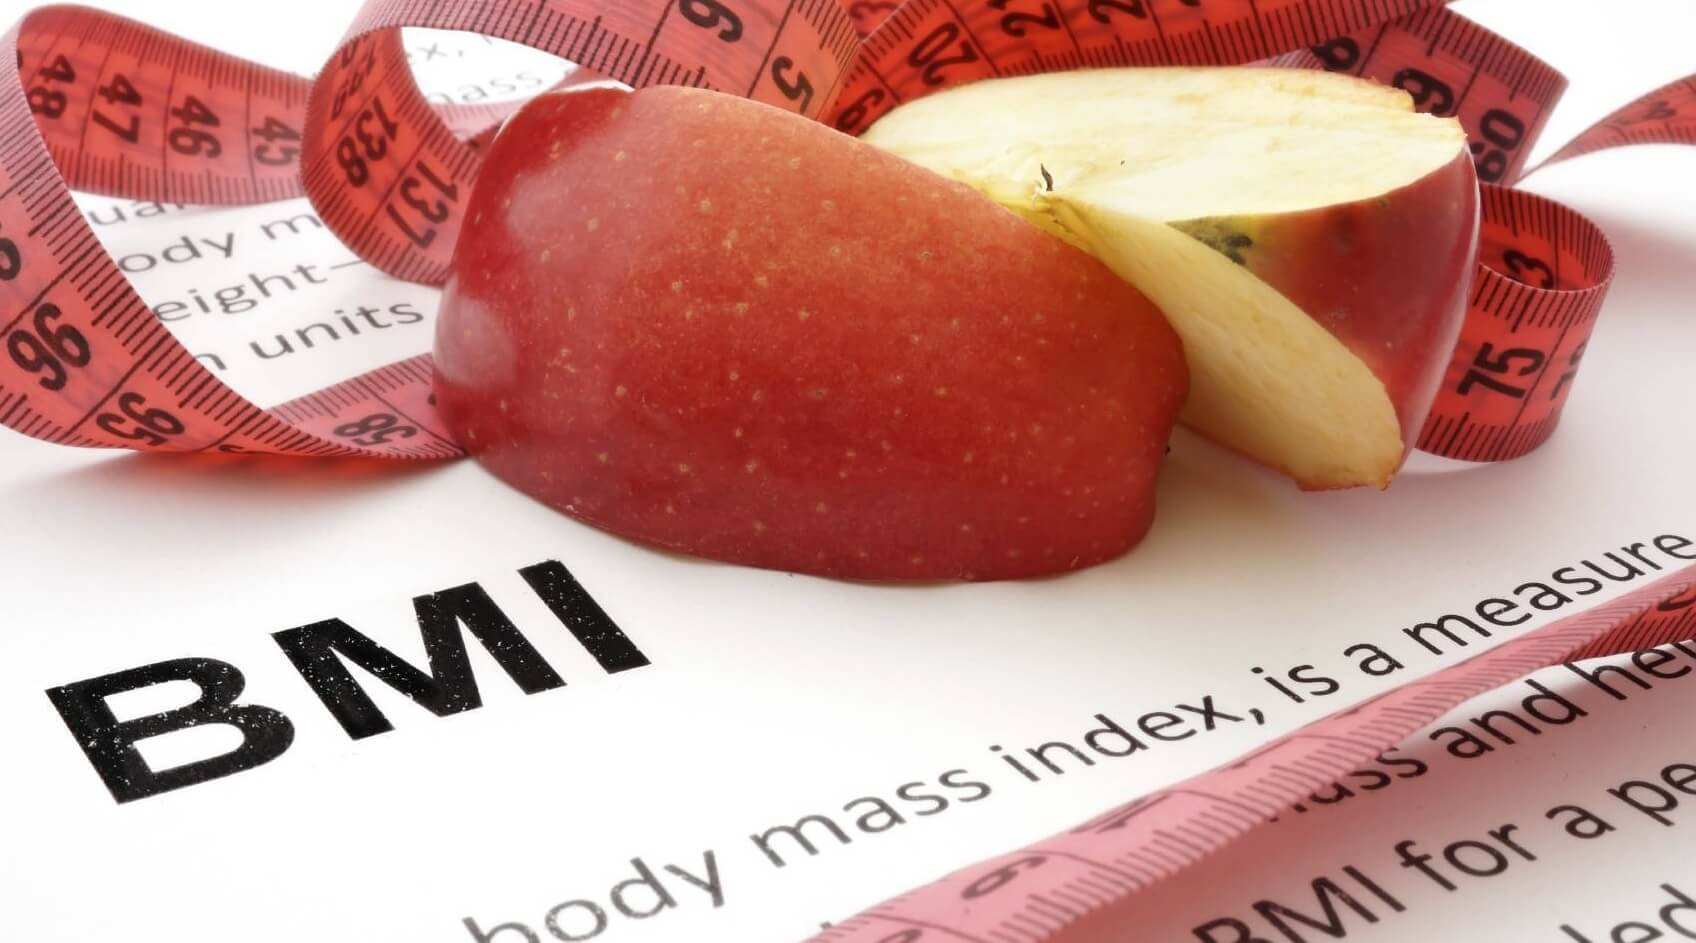 BMI graphic with apple and tape measure